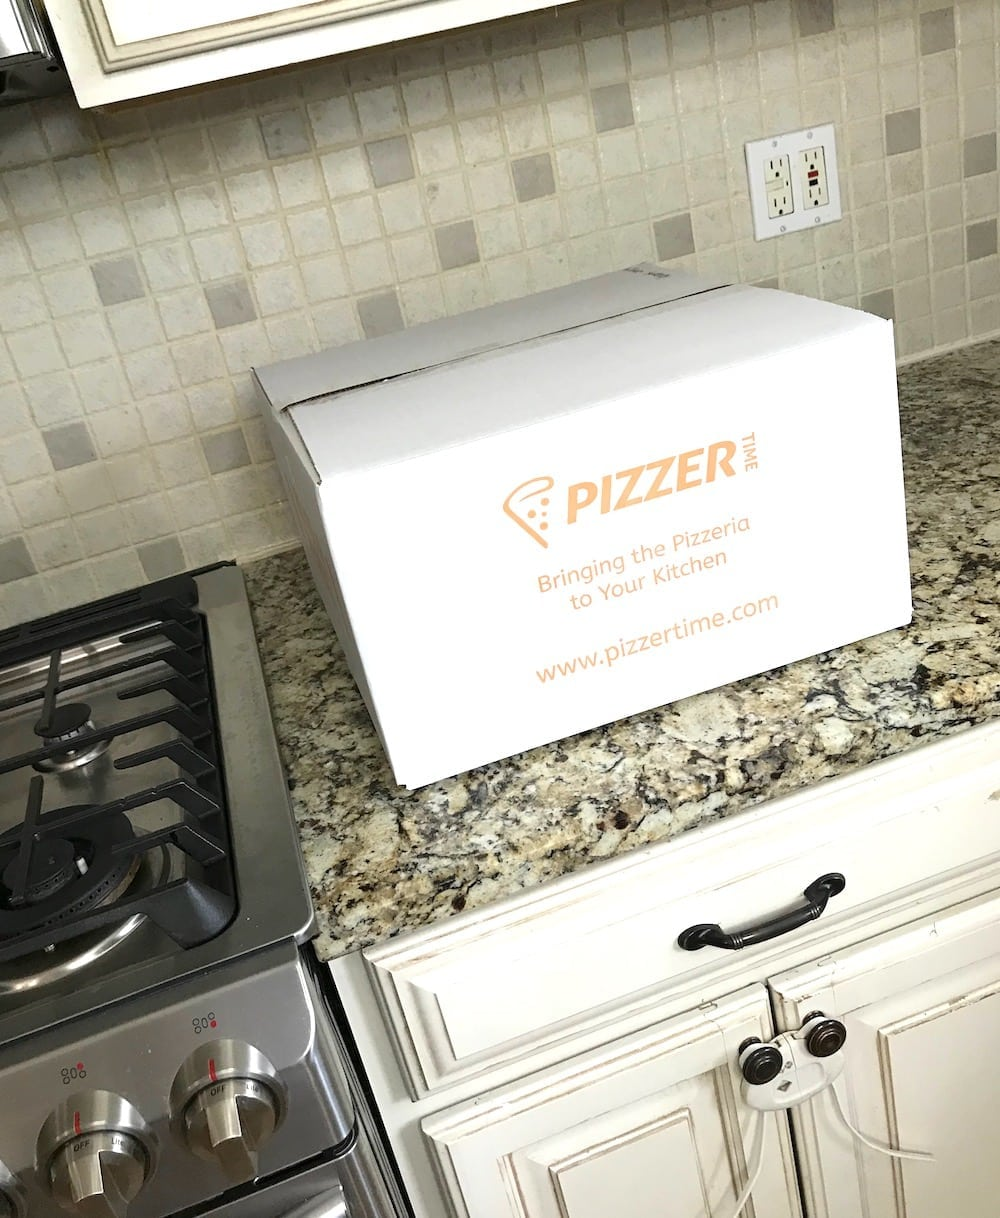 Pizzer Time Box